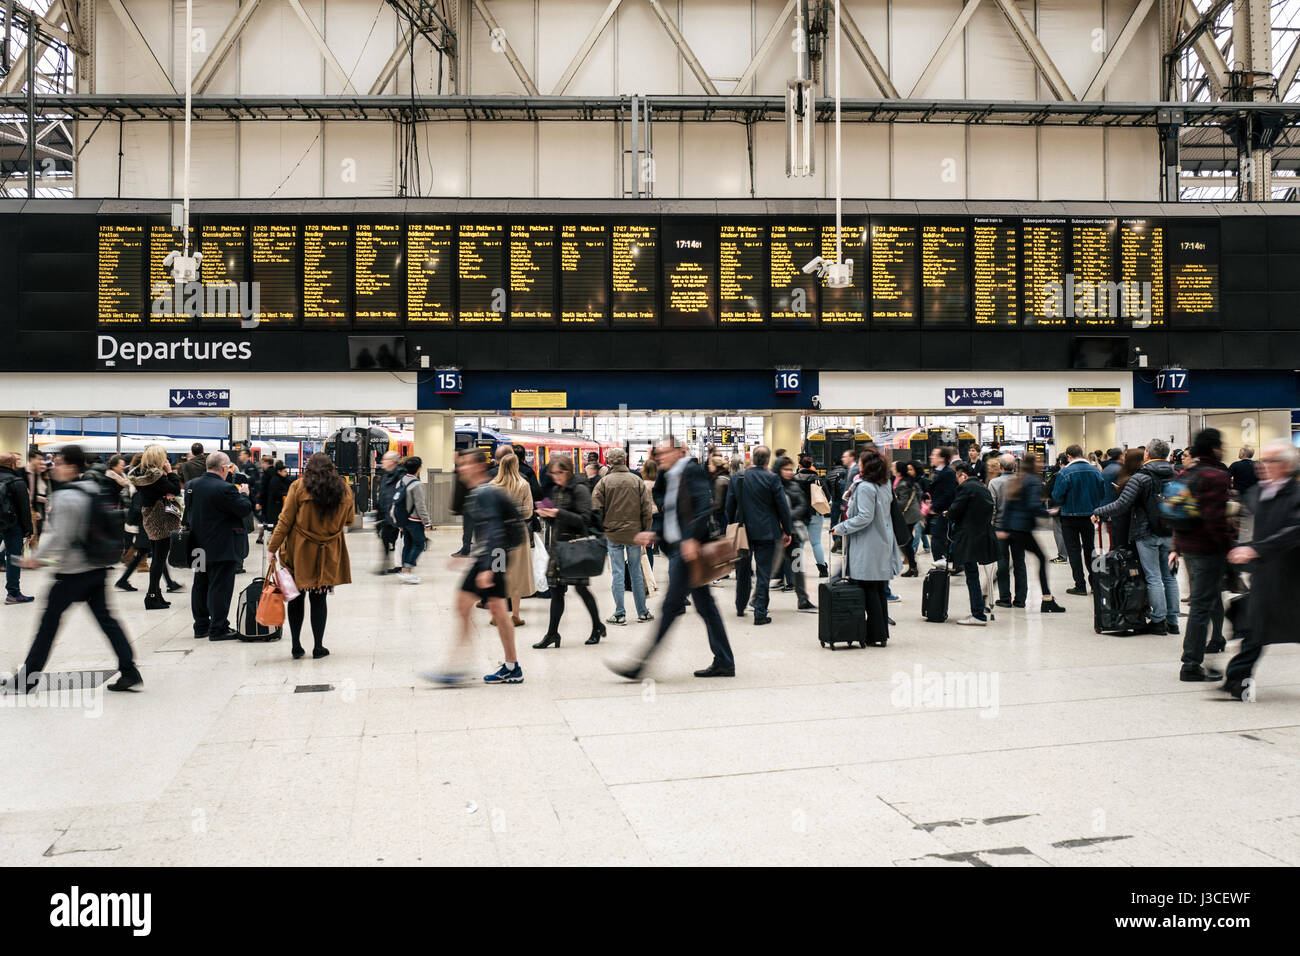 Commuters walk past the departure board in Waterloo Station, central London. - Stock Image